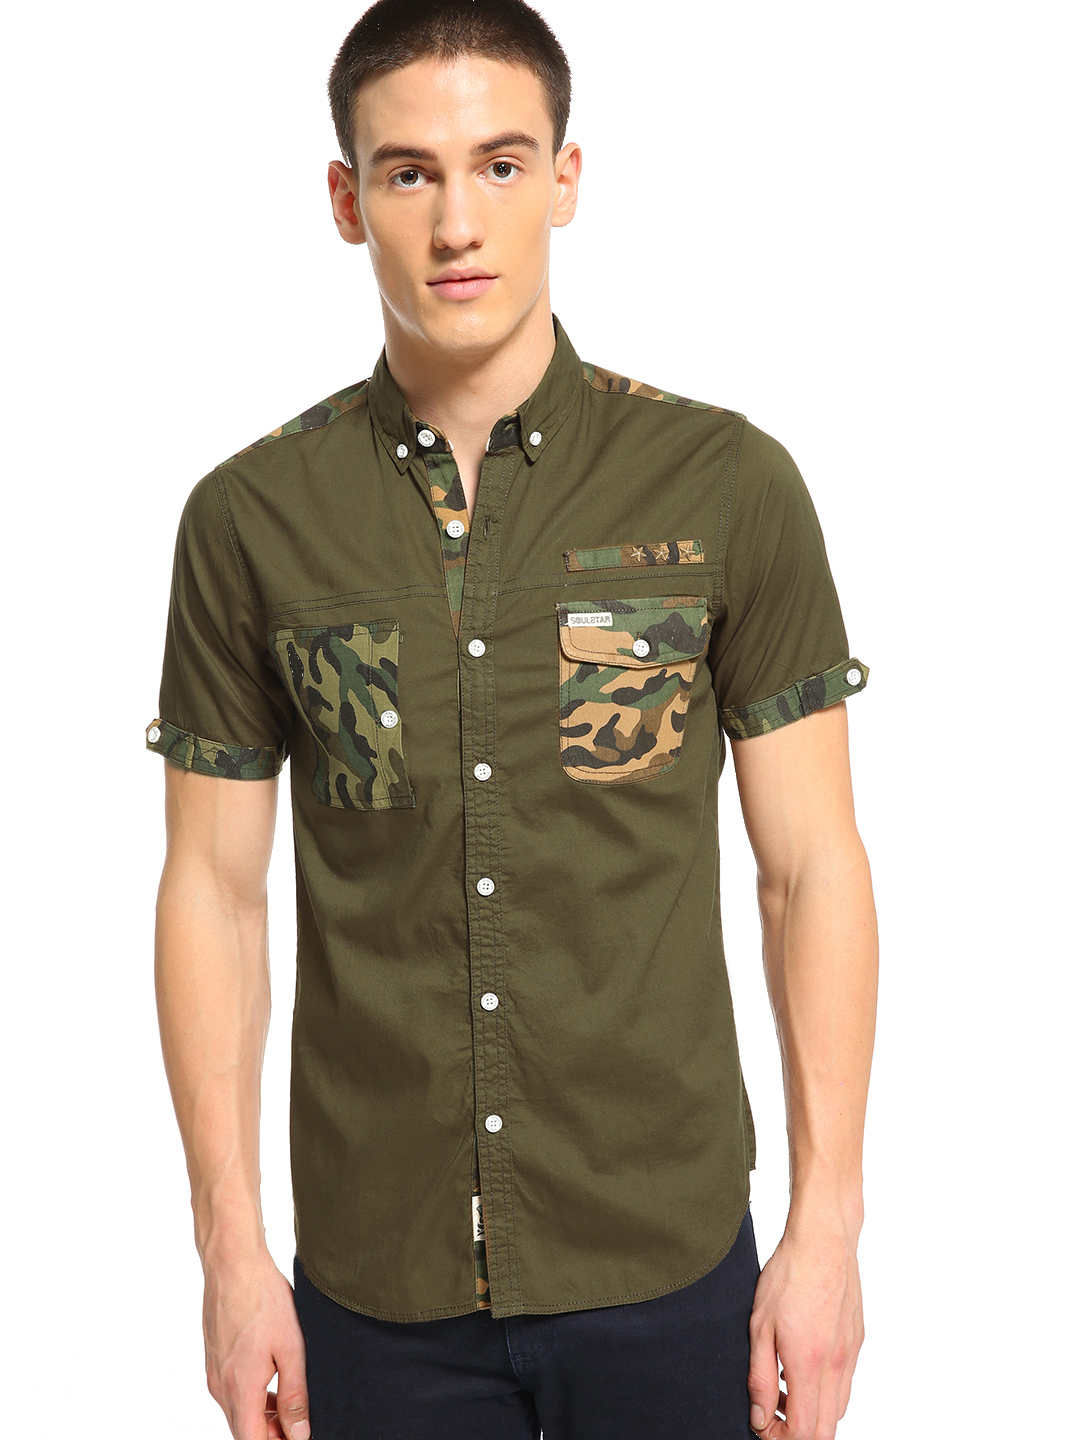 Soulstar Green Camo Patch Pocket Shirt 1